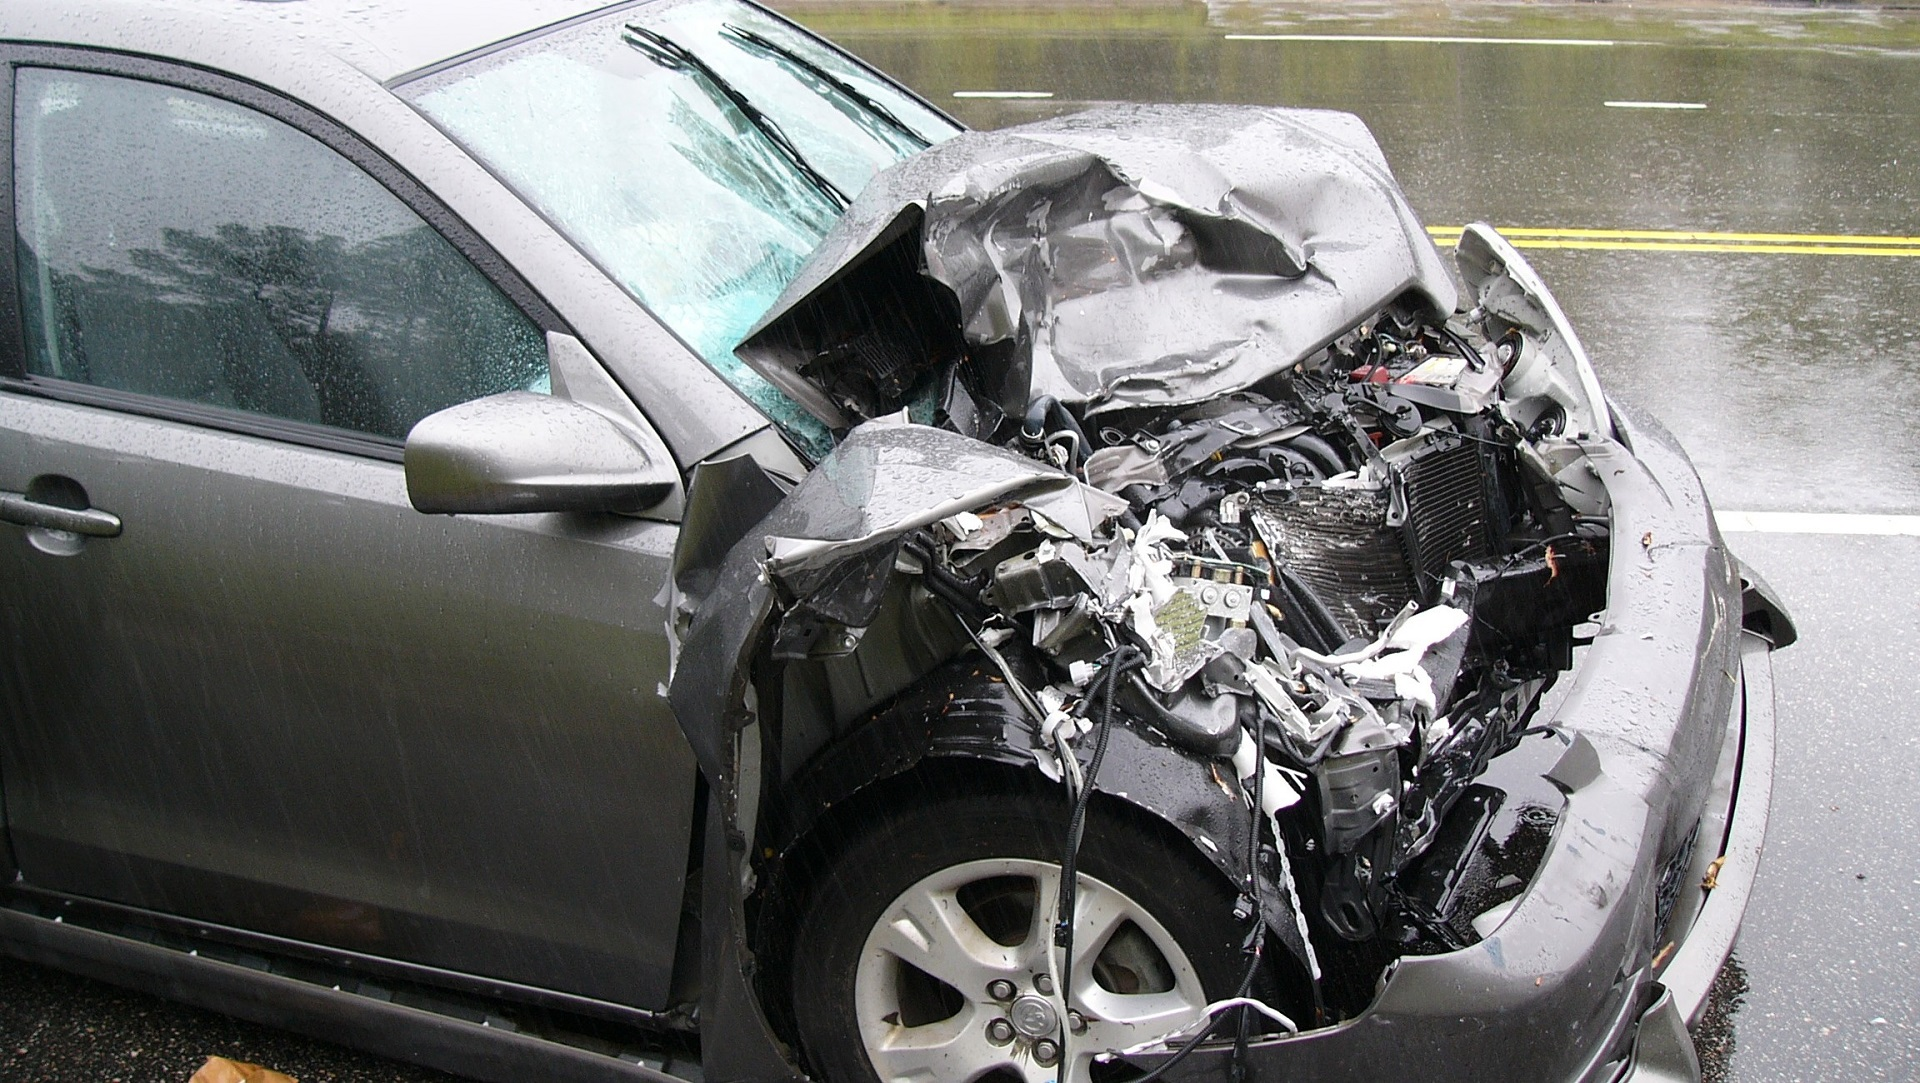 When can I repair car personjal injury law fargo nd